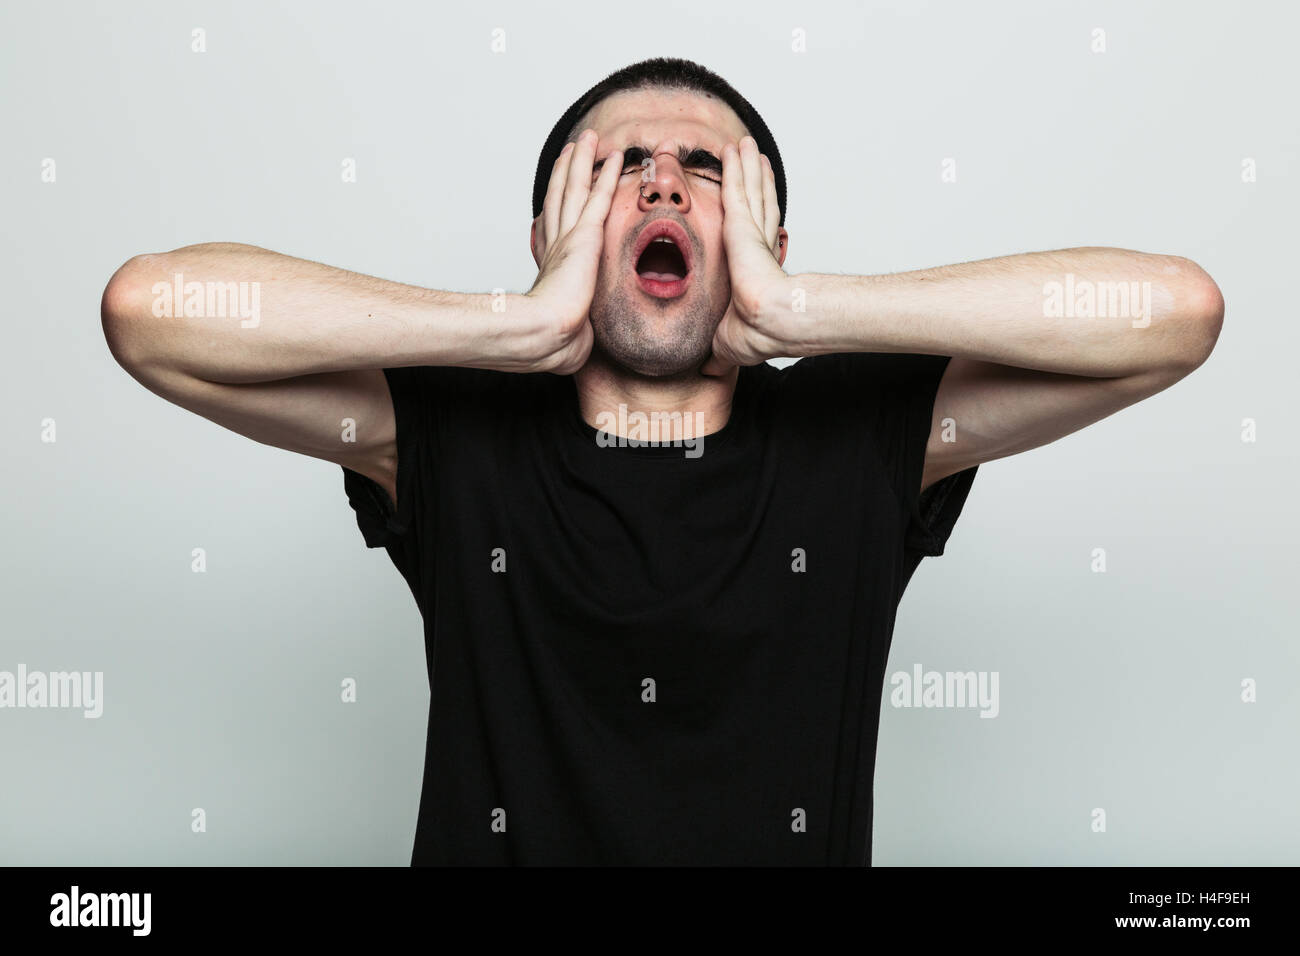 Annoyed male in a black t-shirt - Stock Image